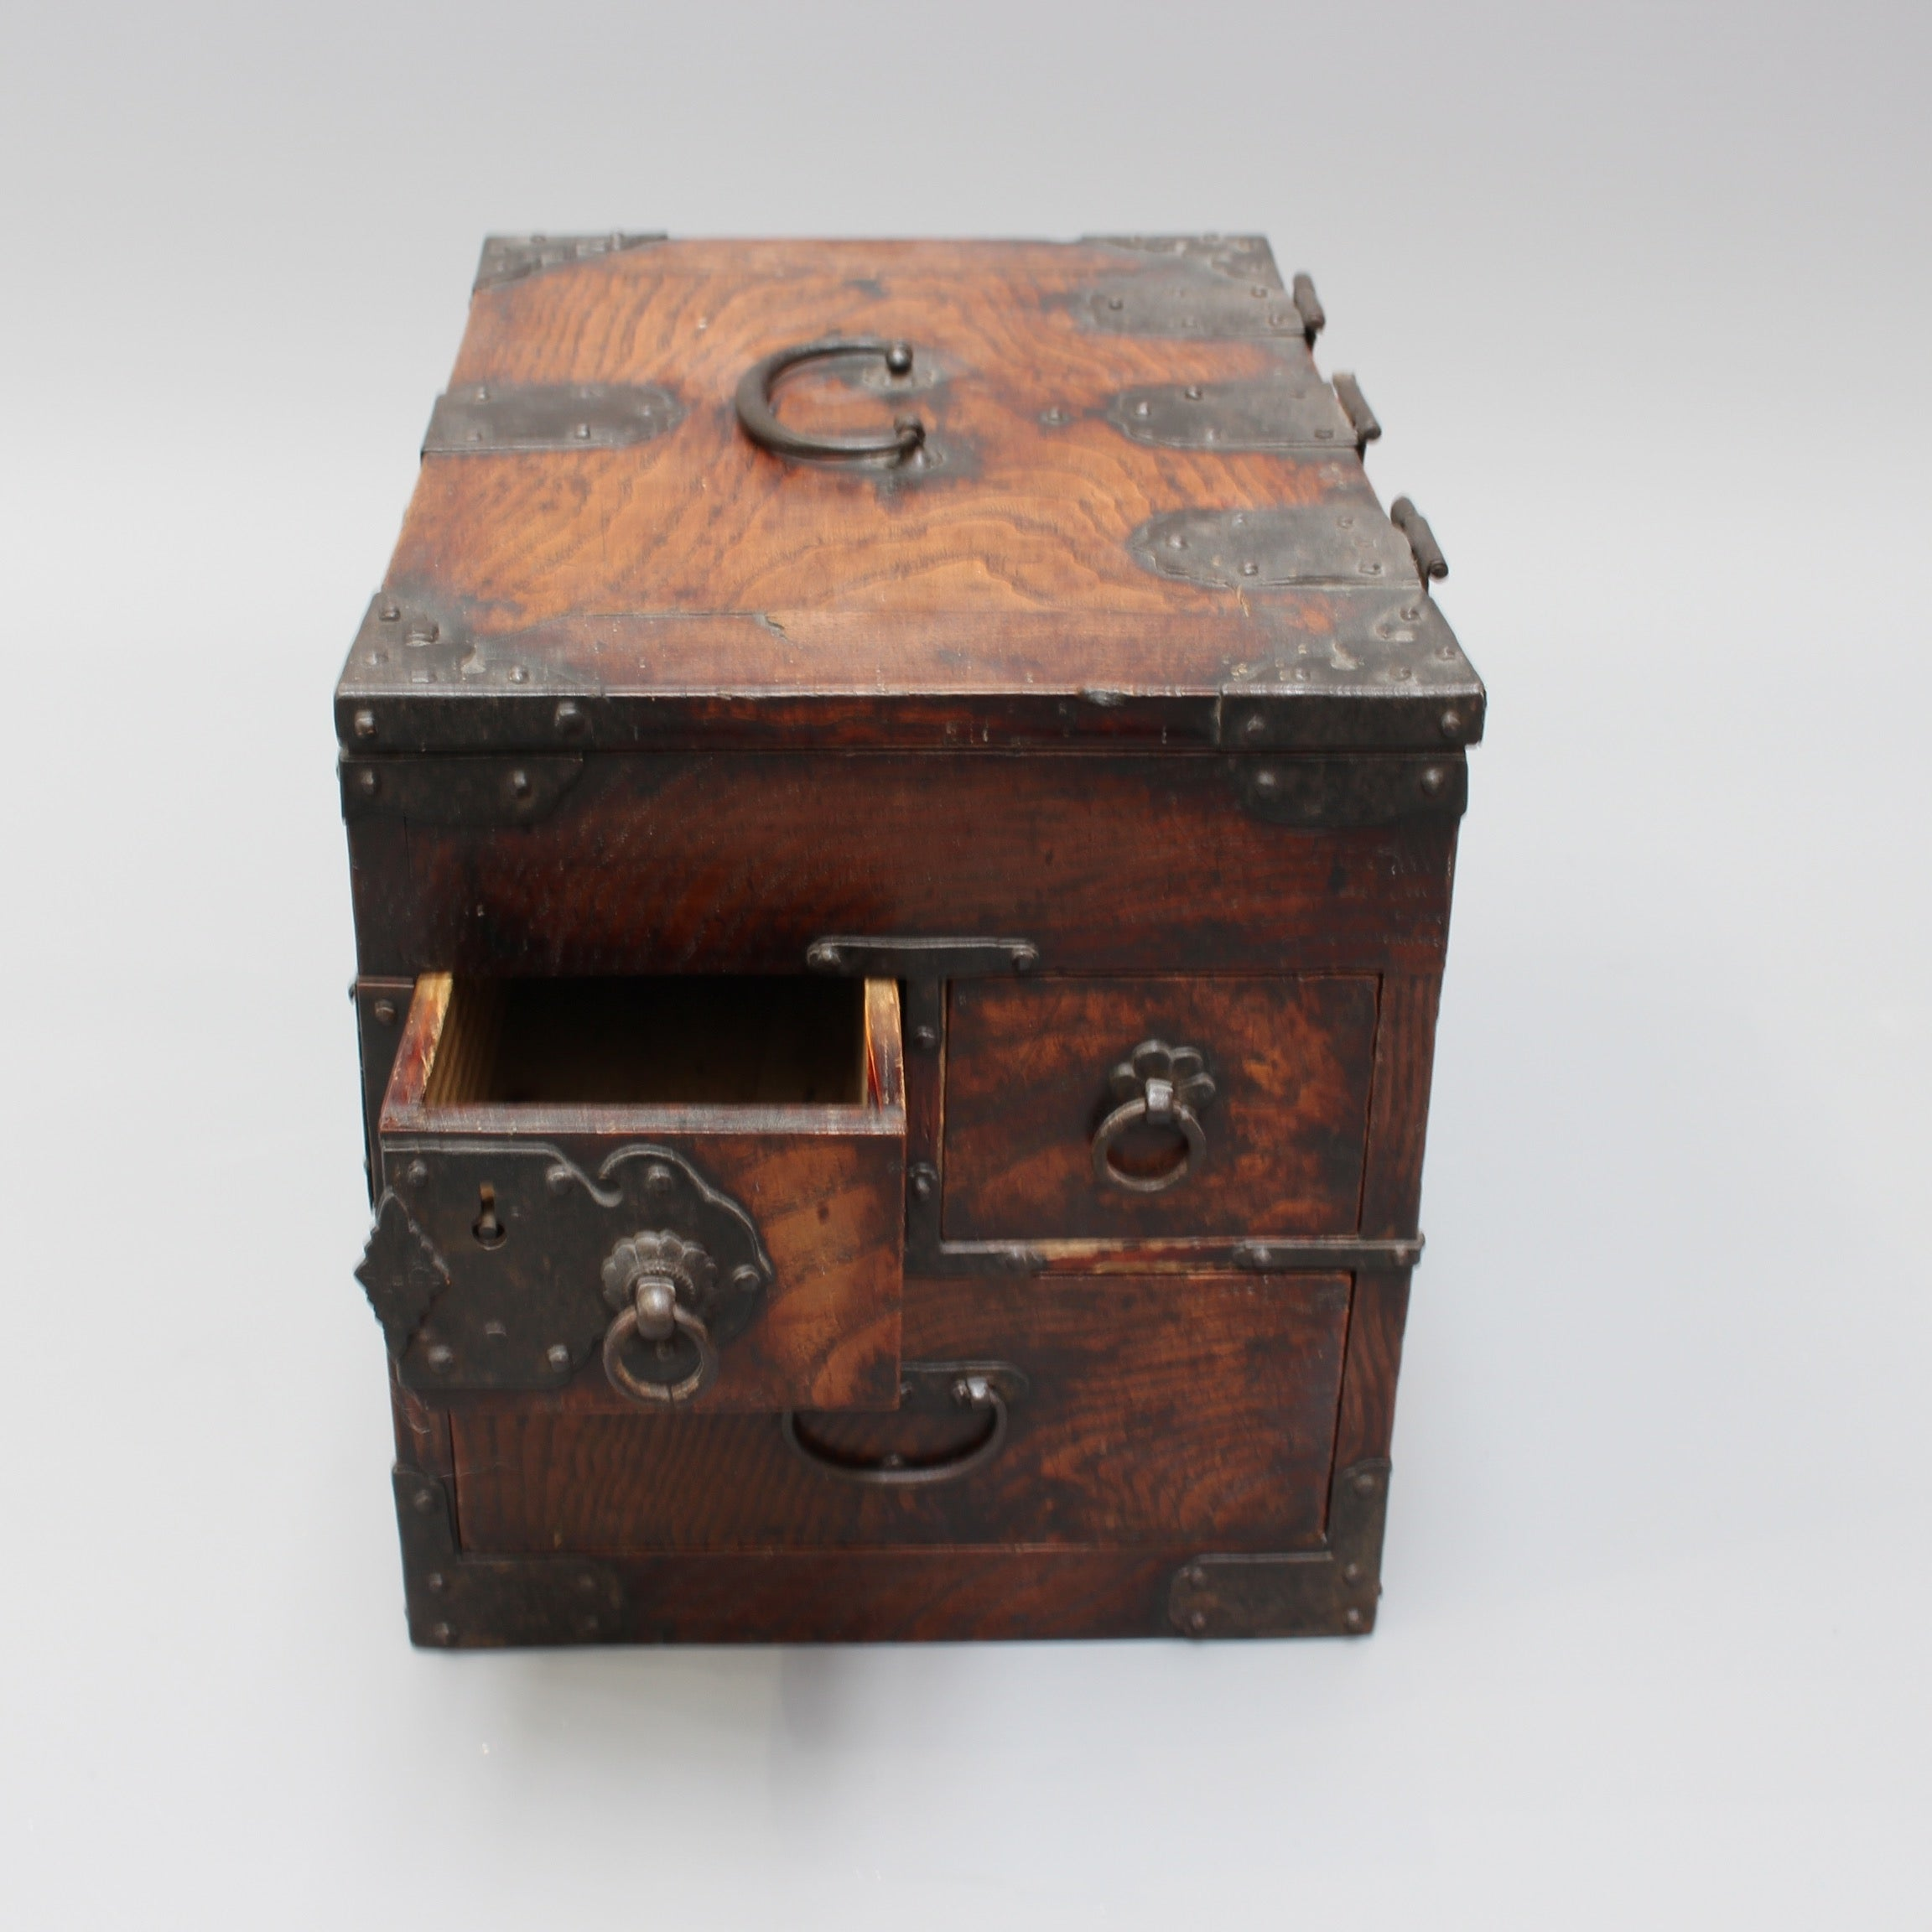 Antique Japanese Wooden Writing Box with Decorative Hardware (Meiji Era)